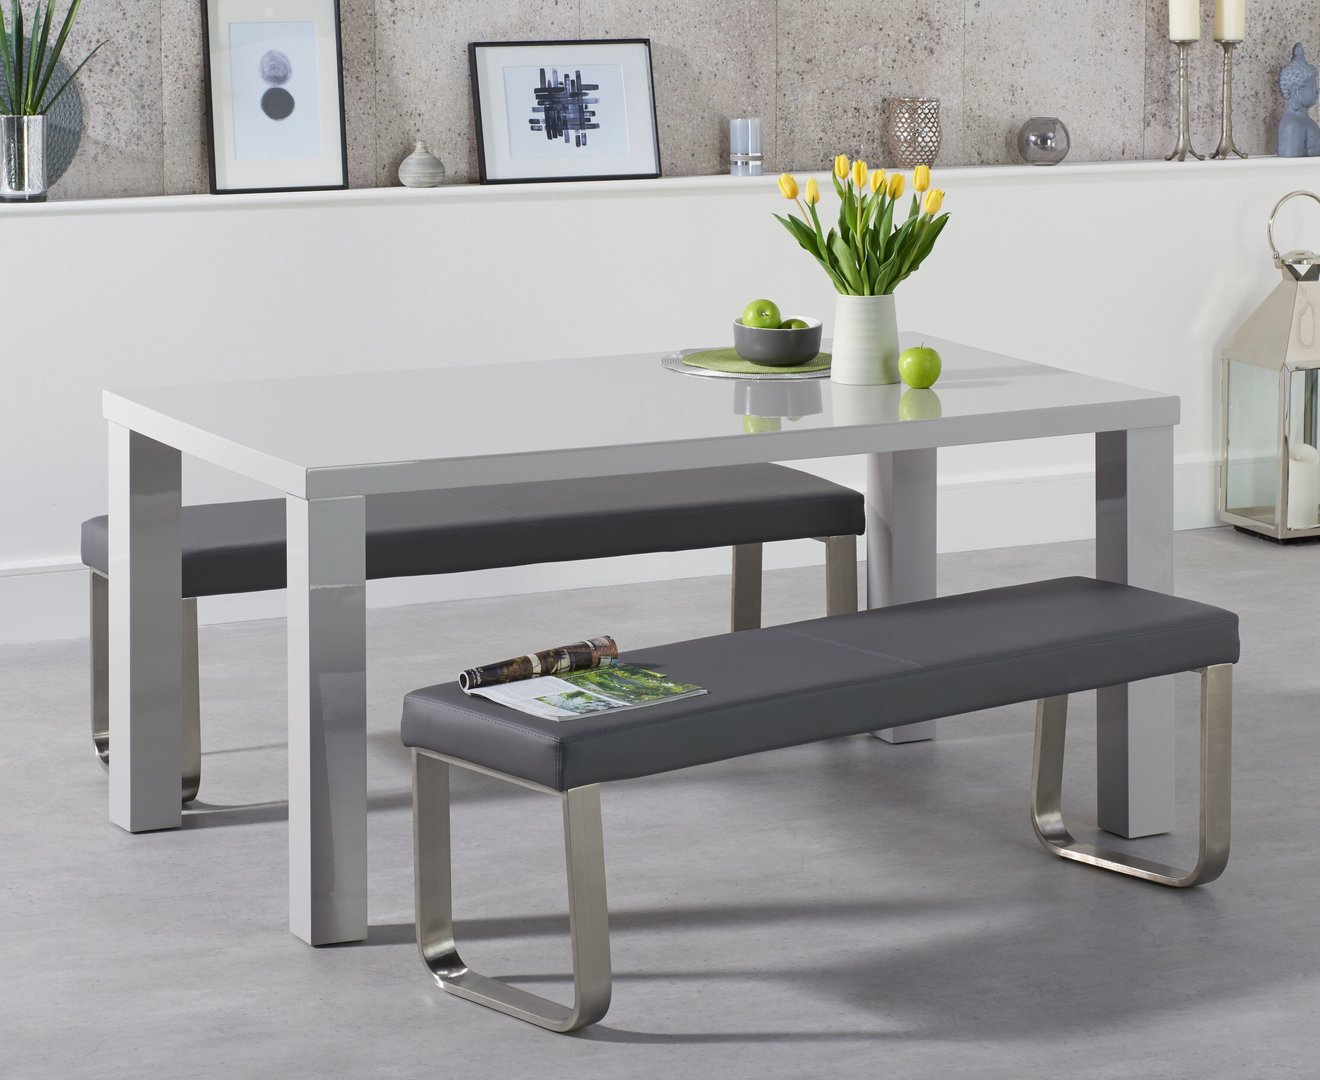 160cm Light Grey High Gloss Dining Table Bench Set Homegenies